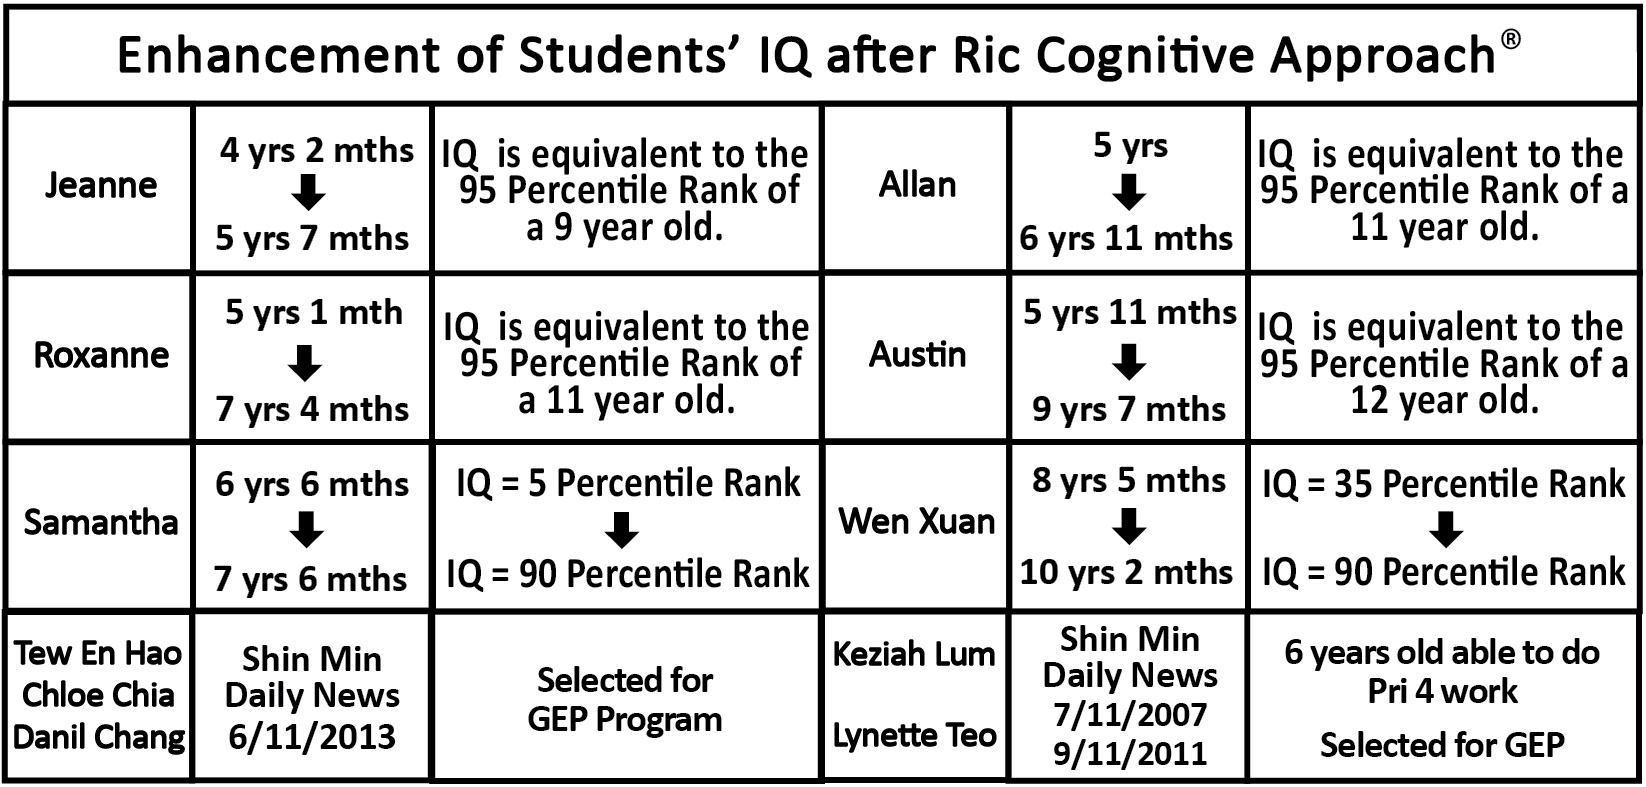 IQ Improvement after Cognitive Training Singapore